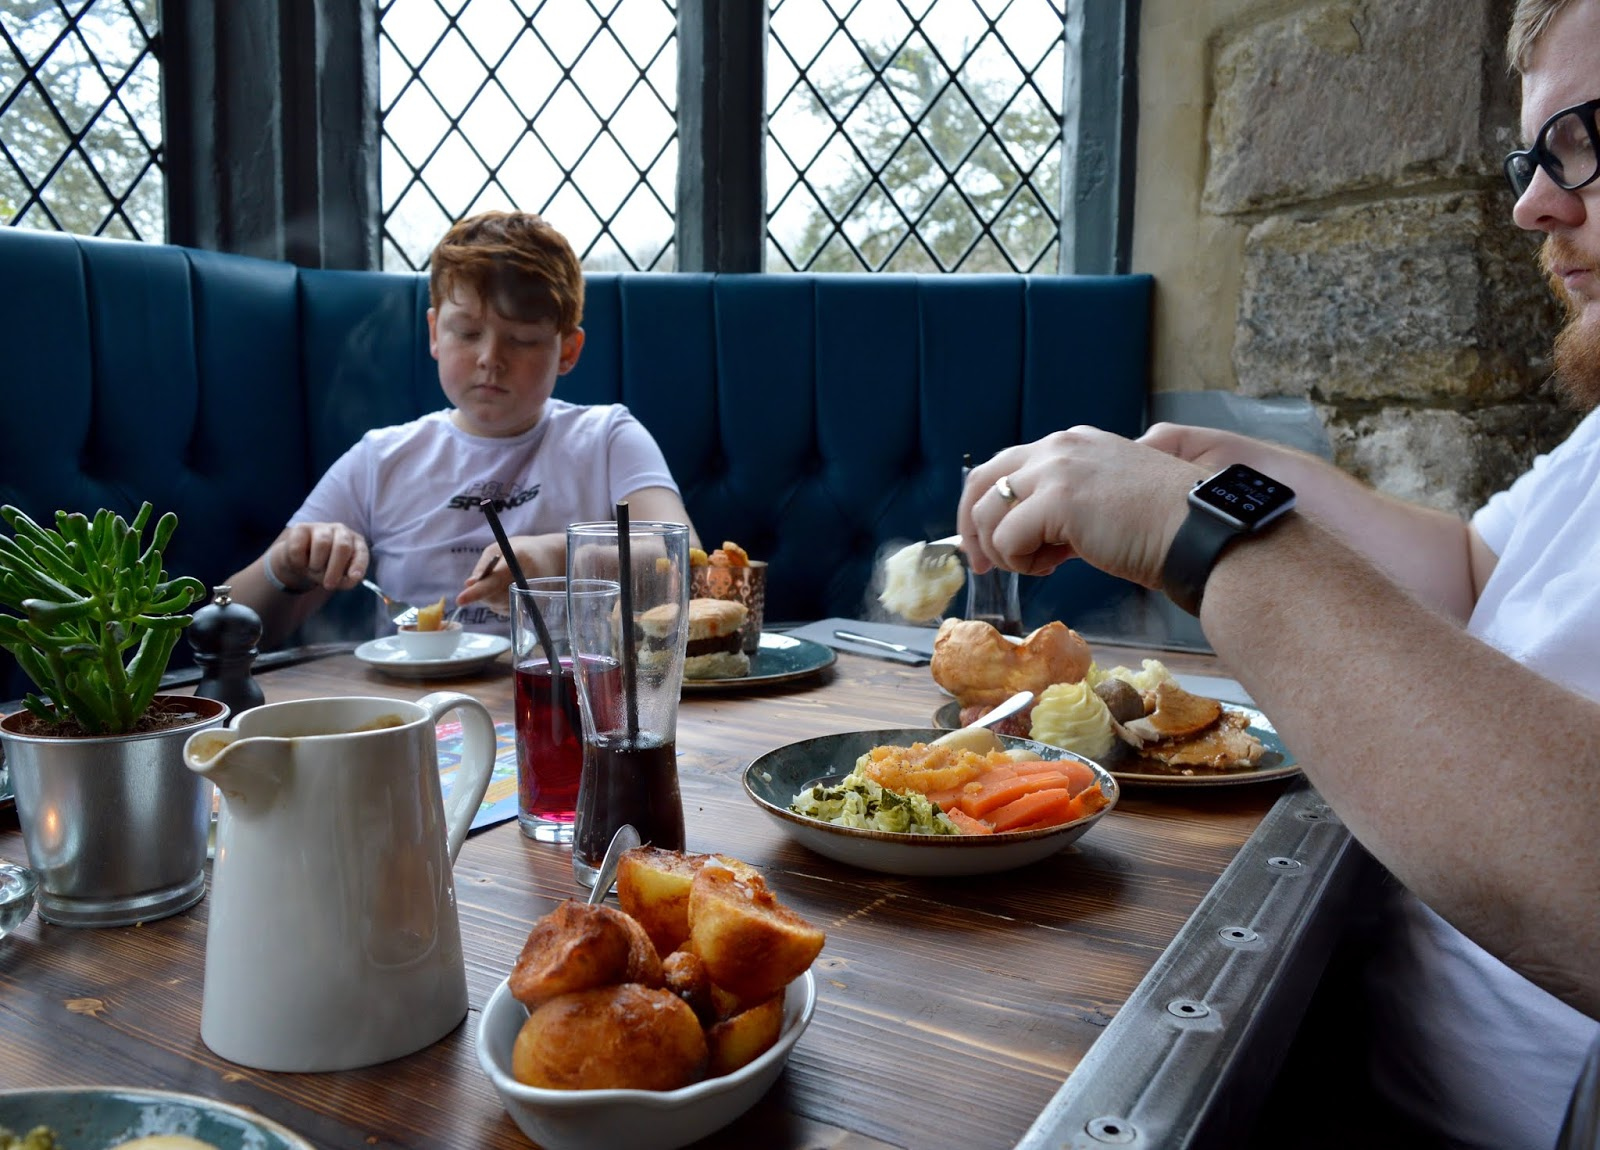 Sunday Lunch, Playgrounds & Birds of Prey at Walworth Castle, Darlington  - family sunday lunch